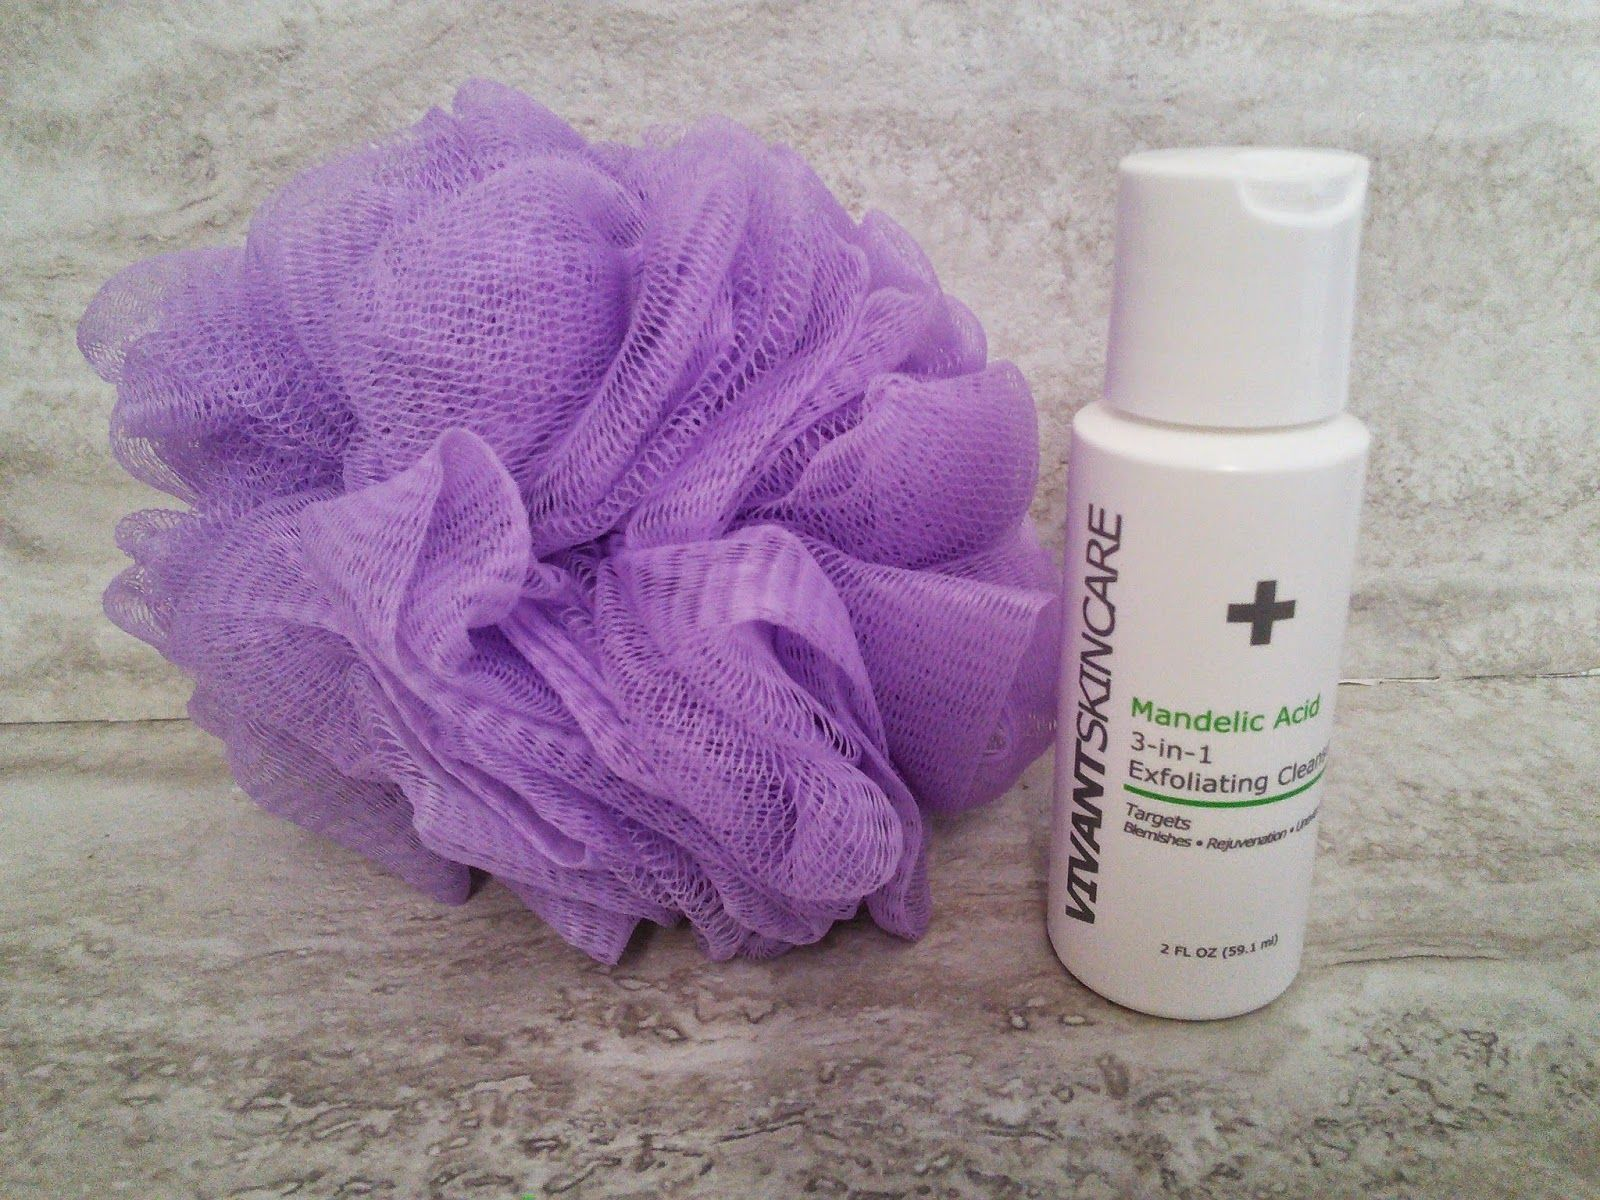 Mom Knows Best Acne Has Met Its Match With Vivant Skin Care Mandelic 3 In 1 Exfoliating Cleanser And A Giveaway Exfoliating Cleanser Exfoliating Skin